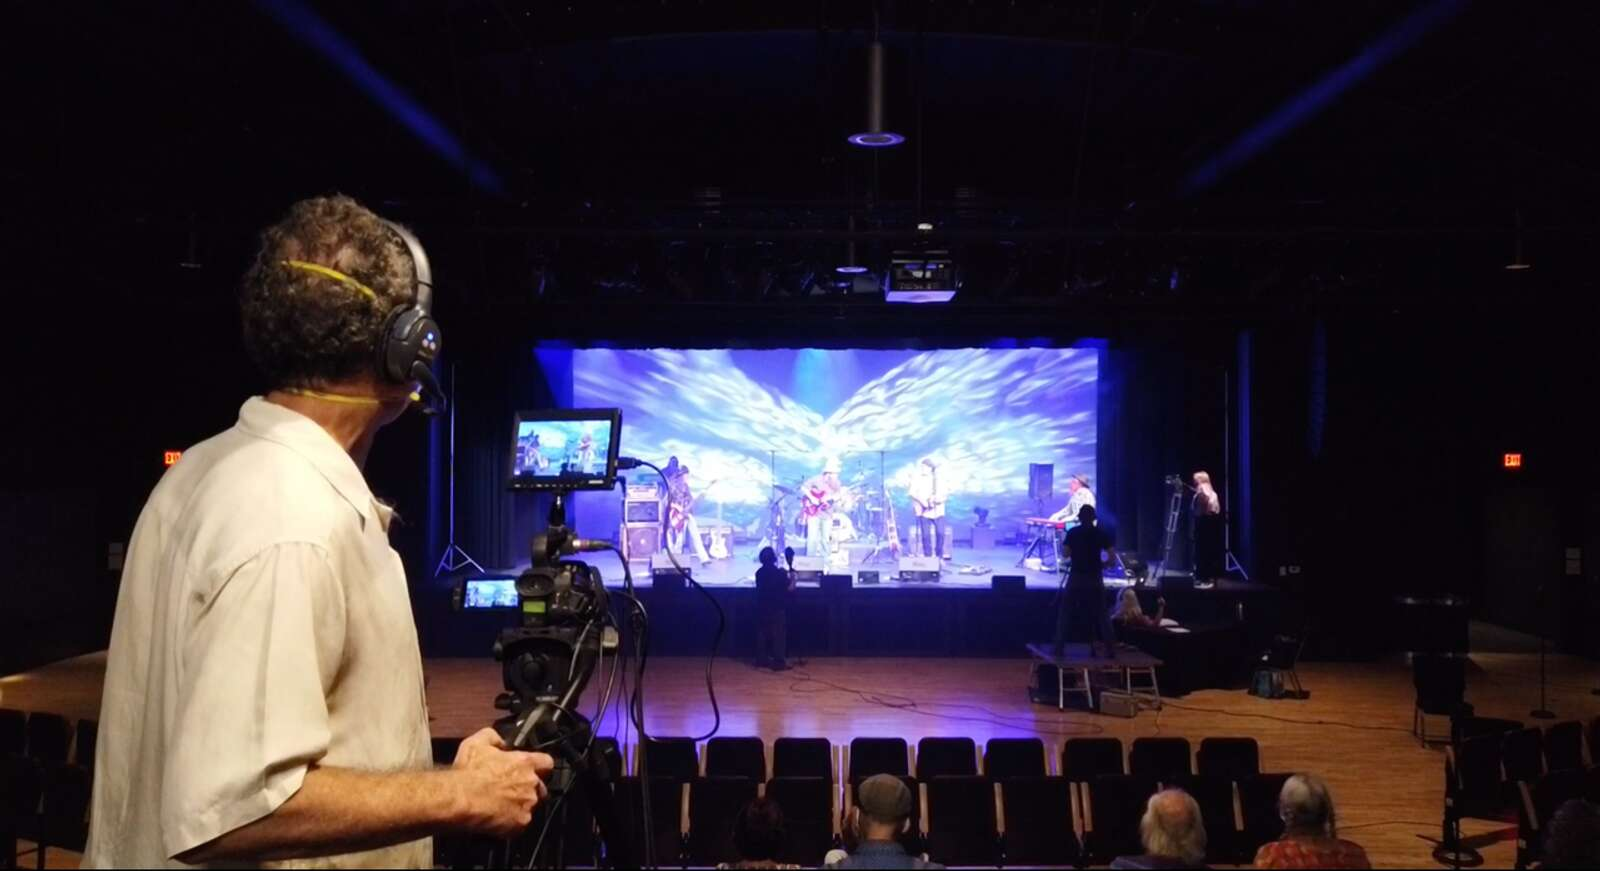 Employees work behind the scenes to make virtual shows at The Center for the Arts a reality.